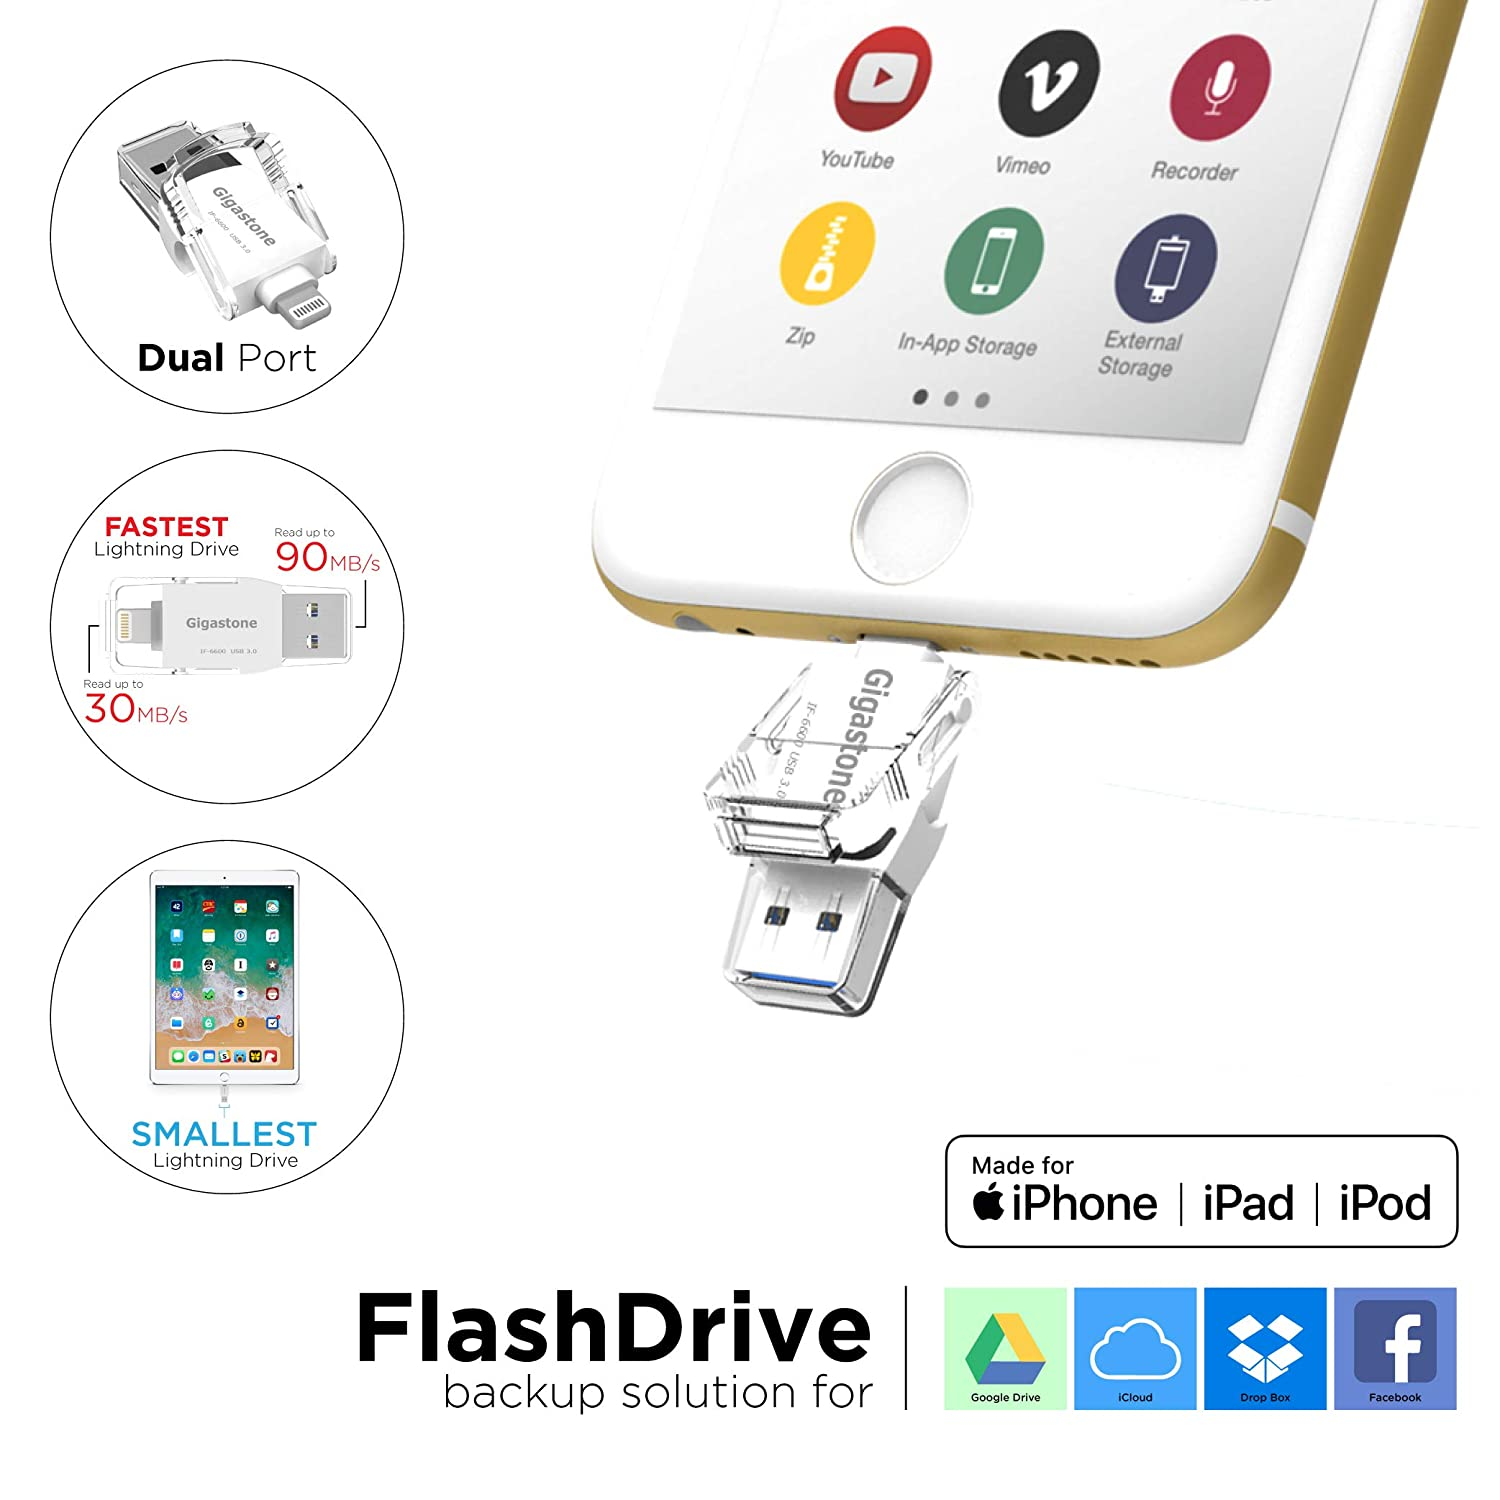 [Apple MFi Certified] Gigastone 64GB iPhone Flash Drive, Lightning and PC  USB 3 0, Super App for iOS iPad, Backup Facebook Instagram Dropbox Google